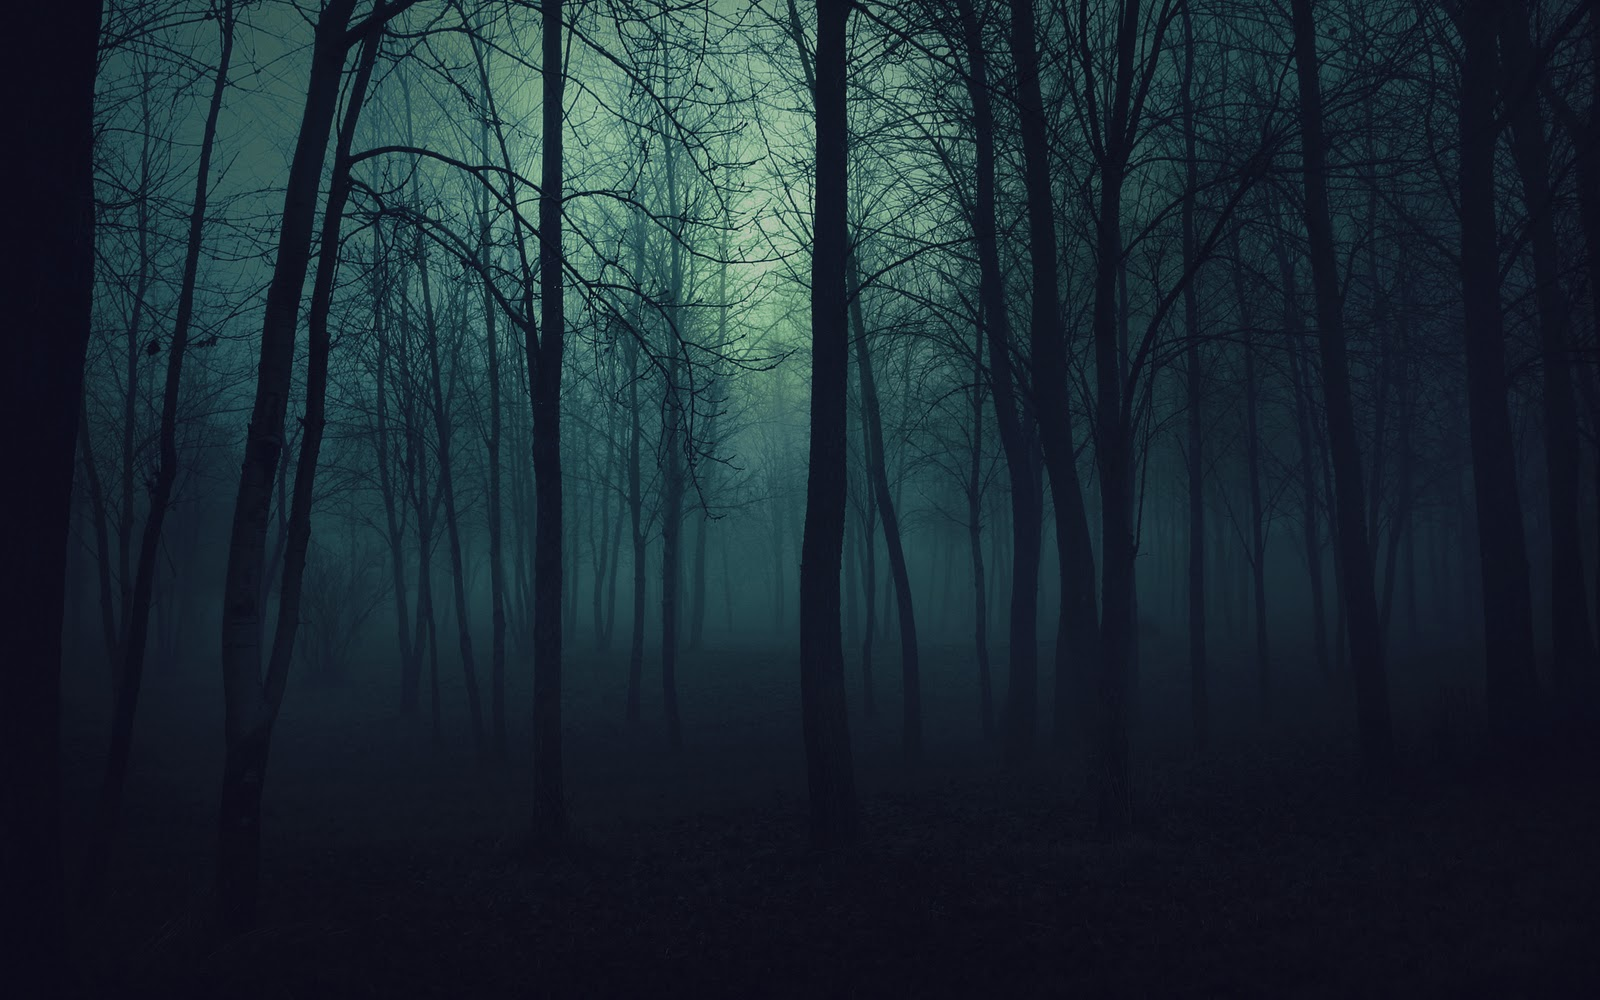 Spooky scene in a creepy night autum in a forrest 2012 free download